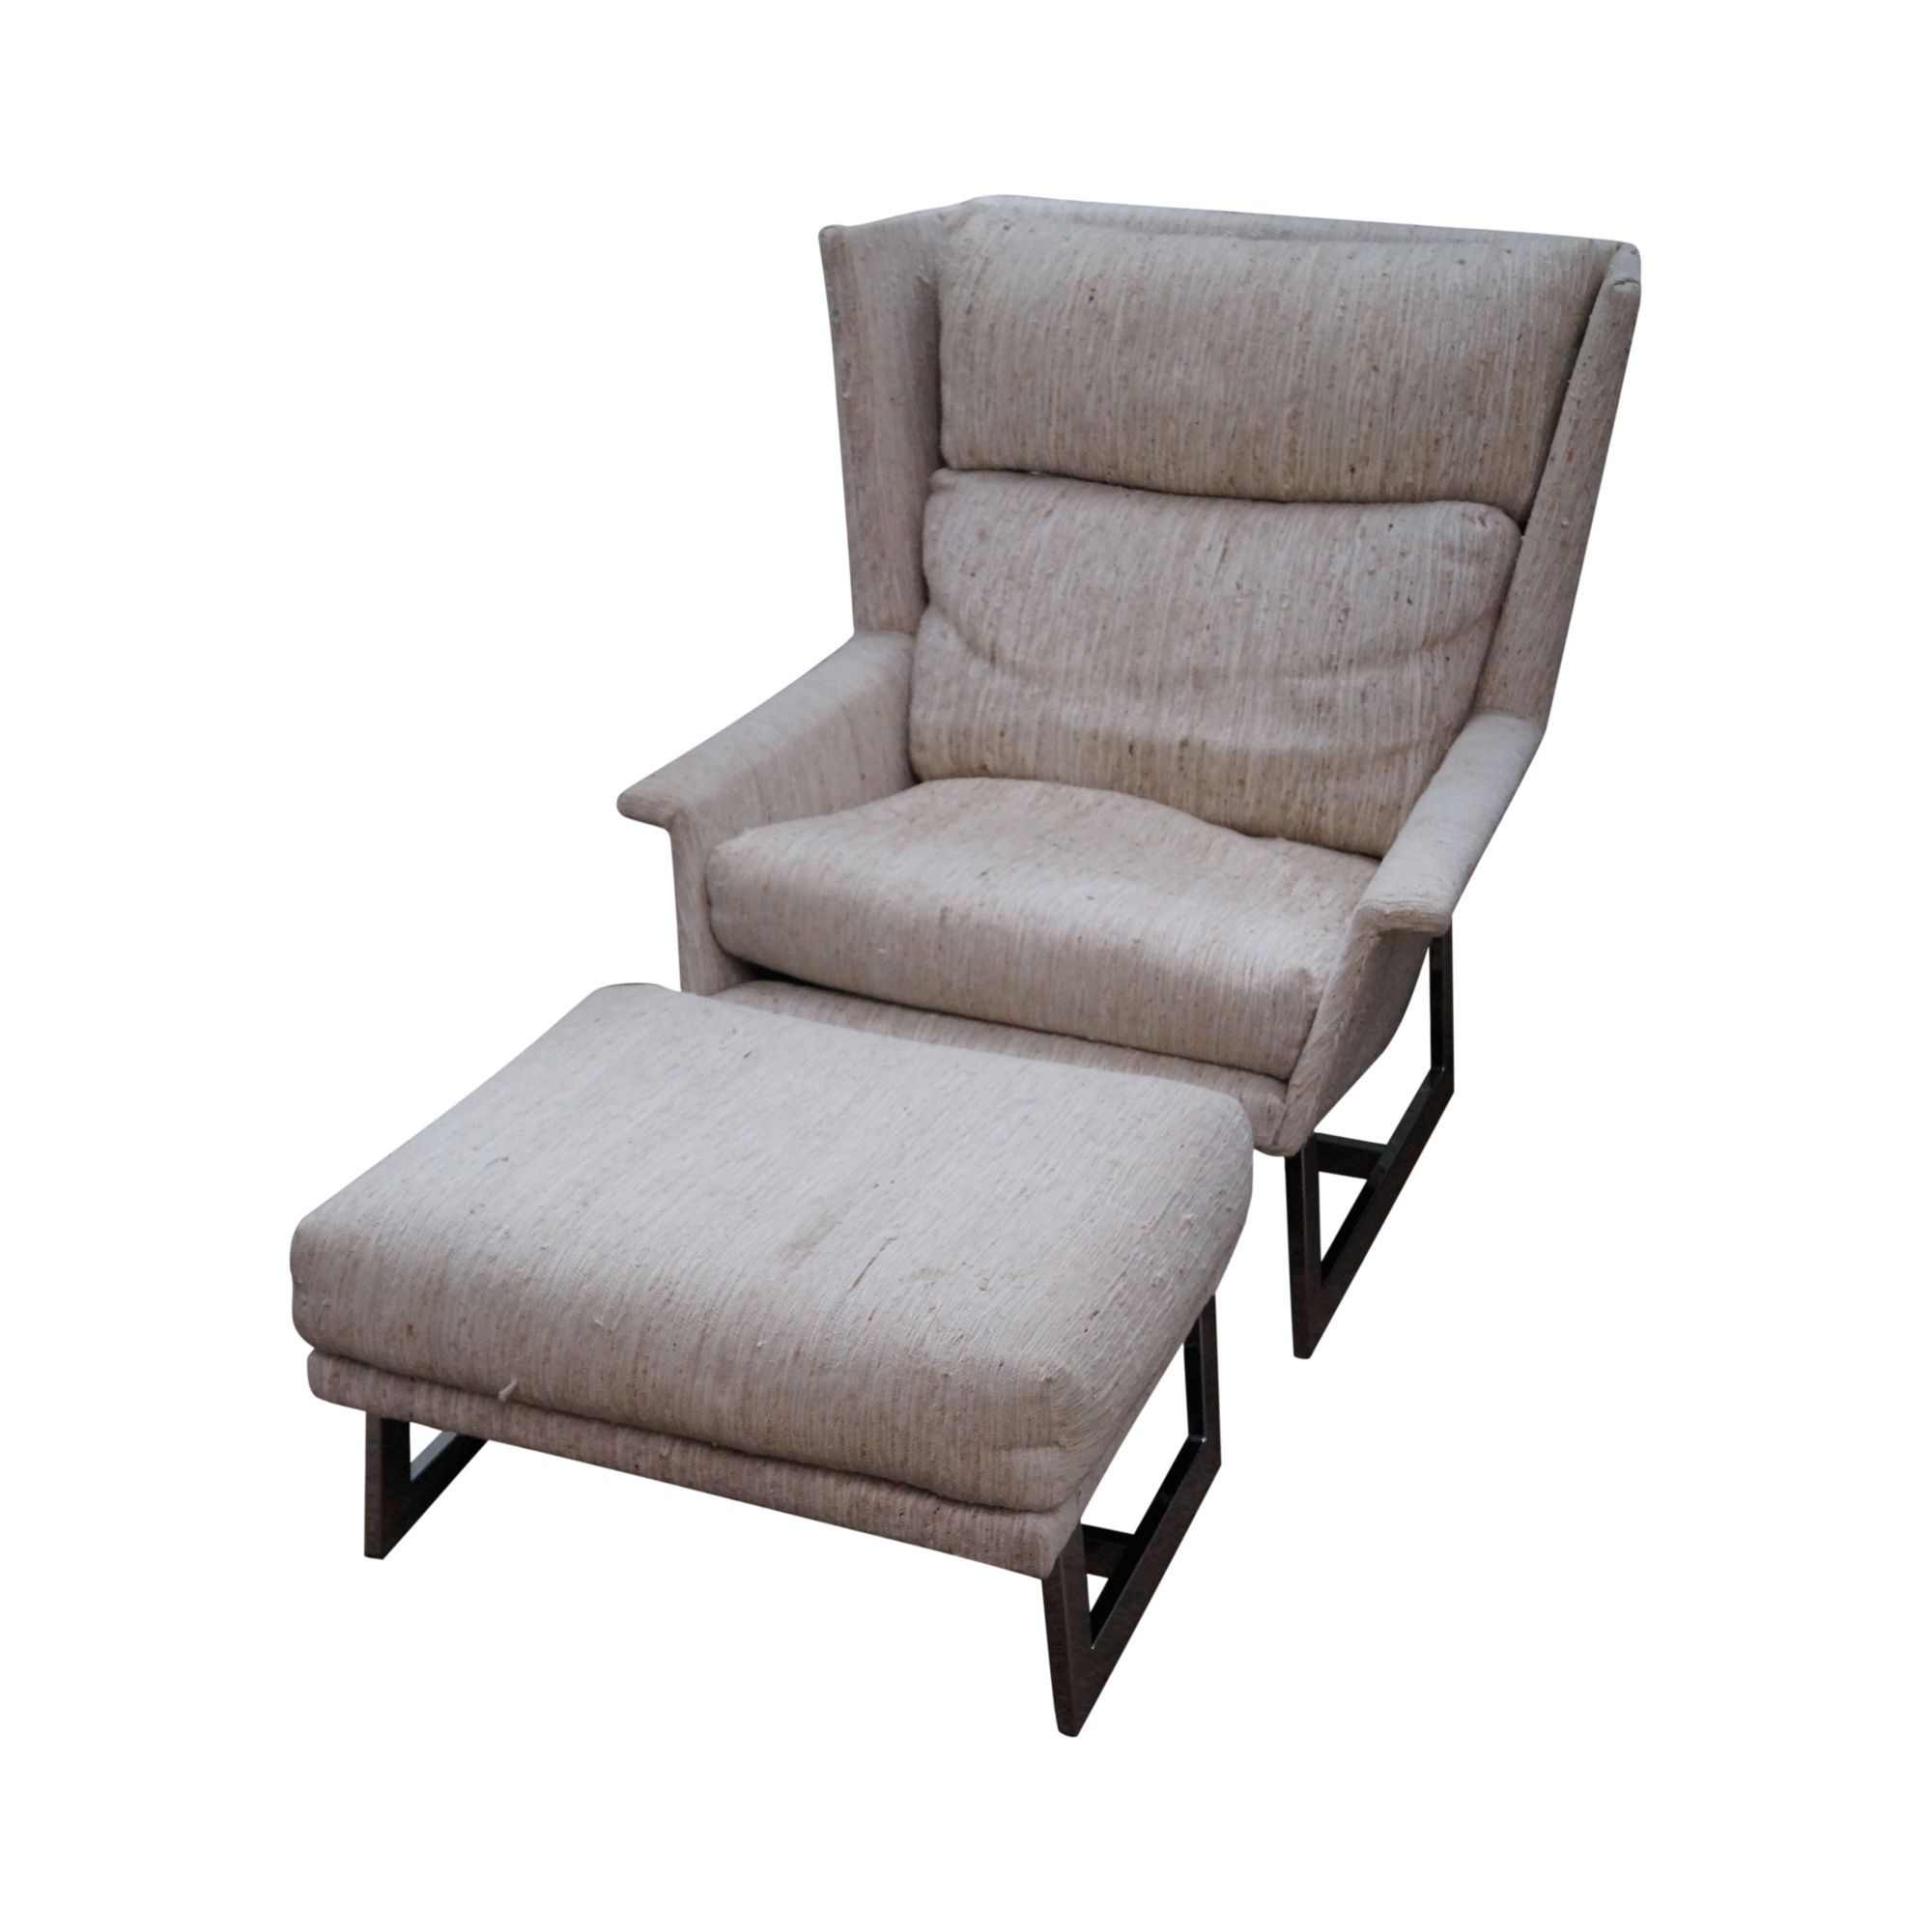 Mid Century Modern Wing Lounge Chair with Ottoman